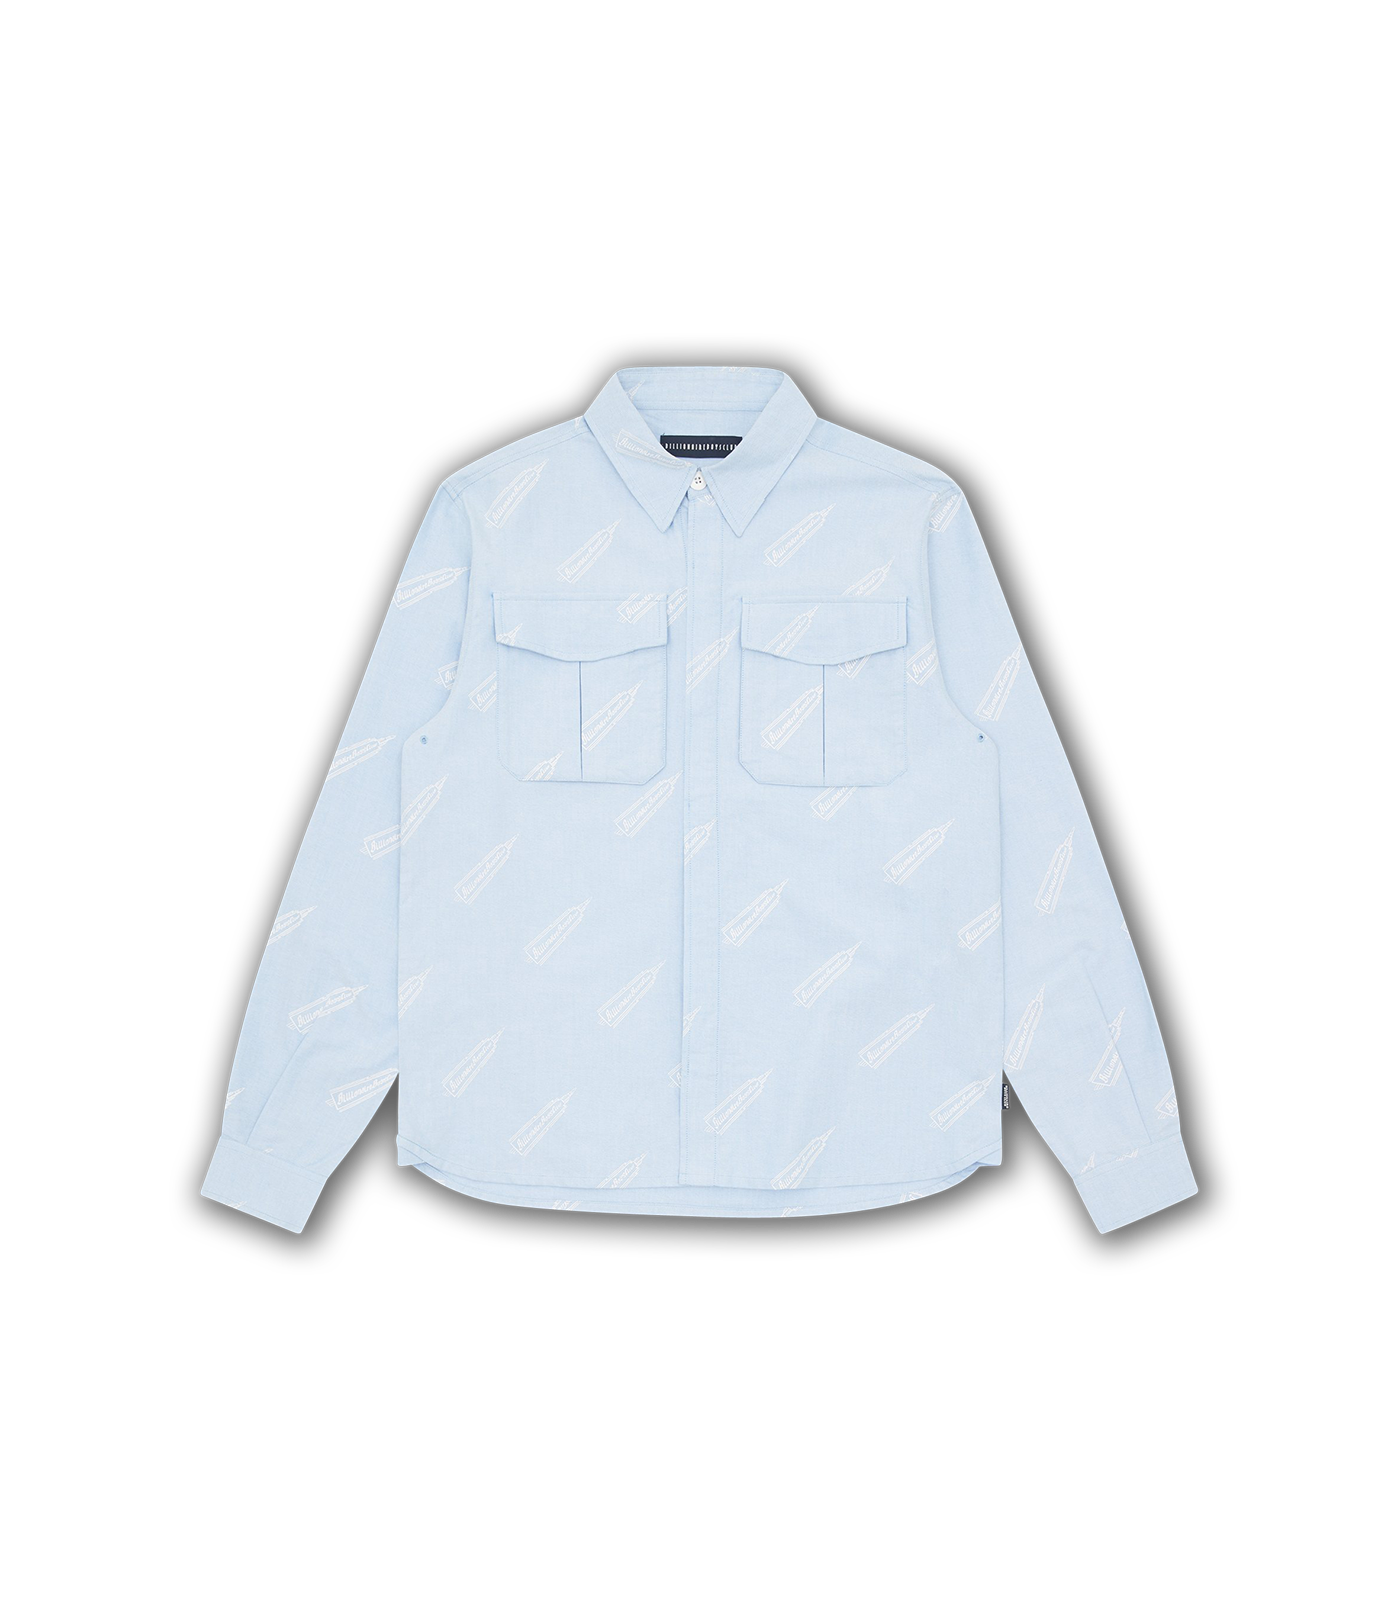 OXFORD COTTON A/O FIELD SHIRT - BLUE